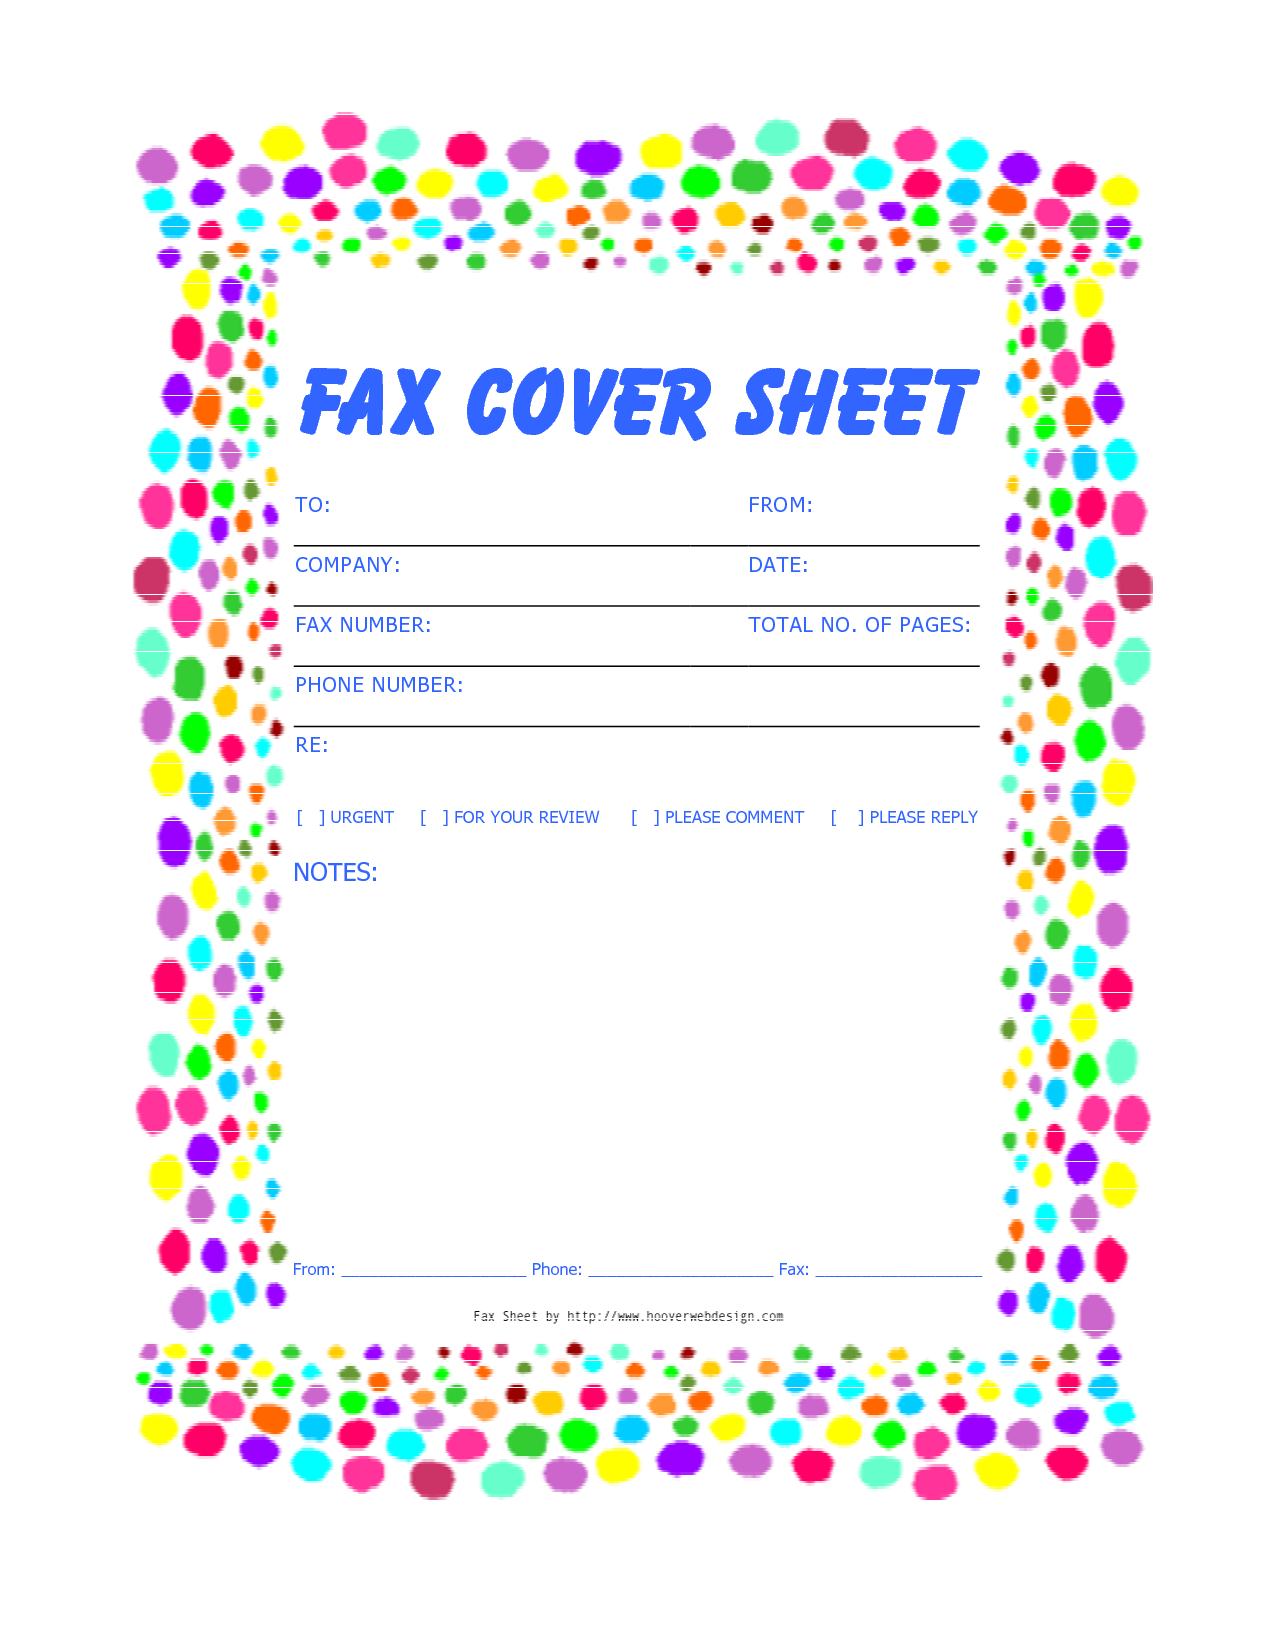 Free printable fax cover sheets free printable fax cover sheets free printable fax cover sheets free printable fax cover sheets templates madrichimfo Image collections